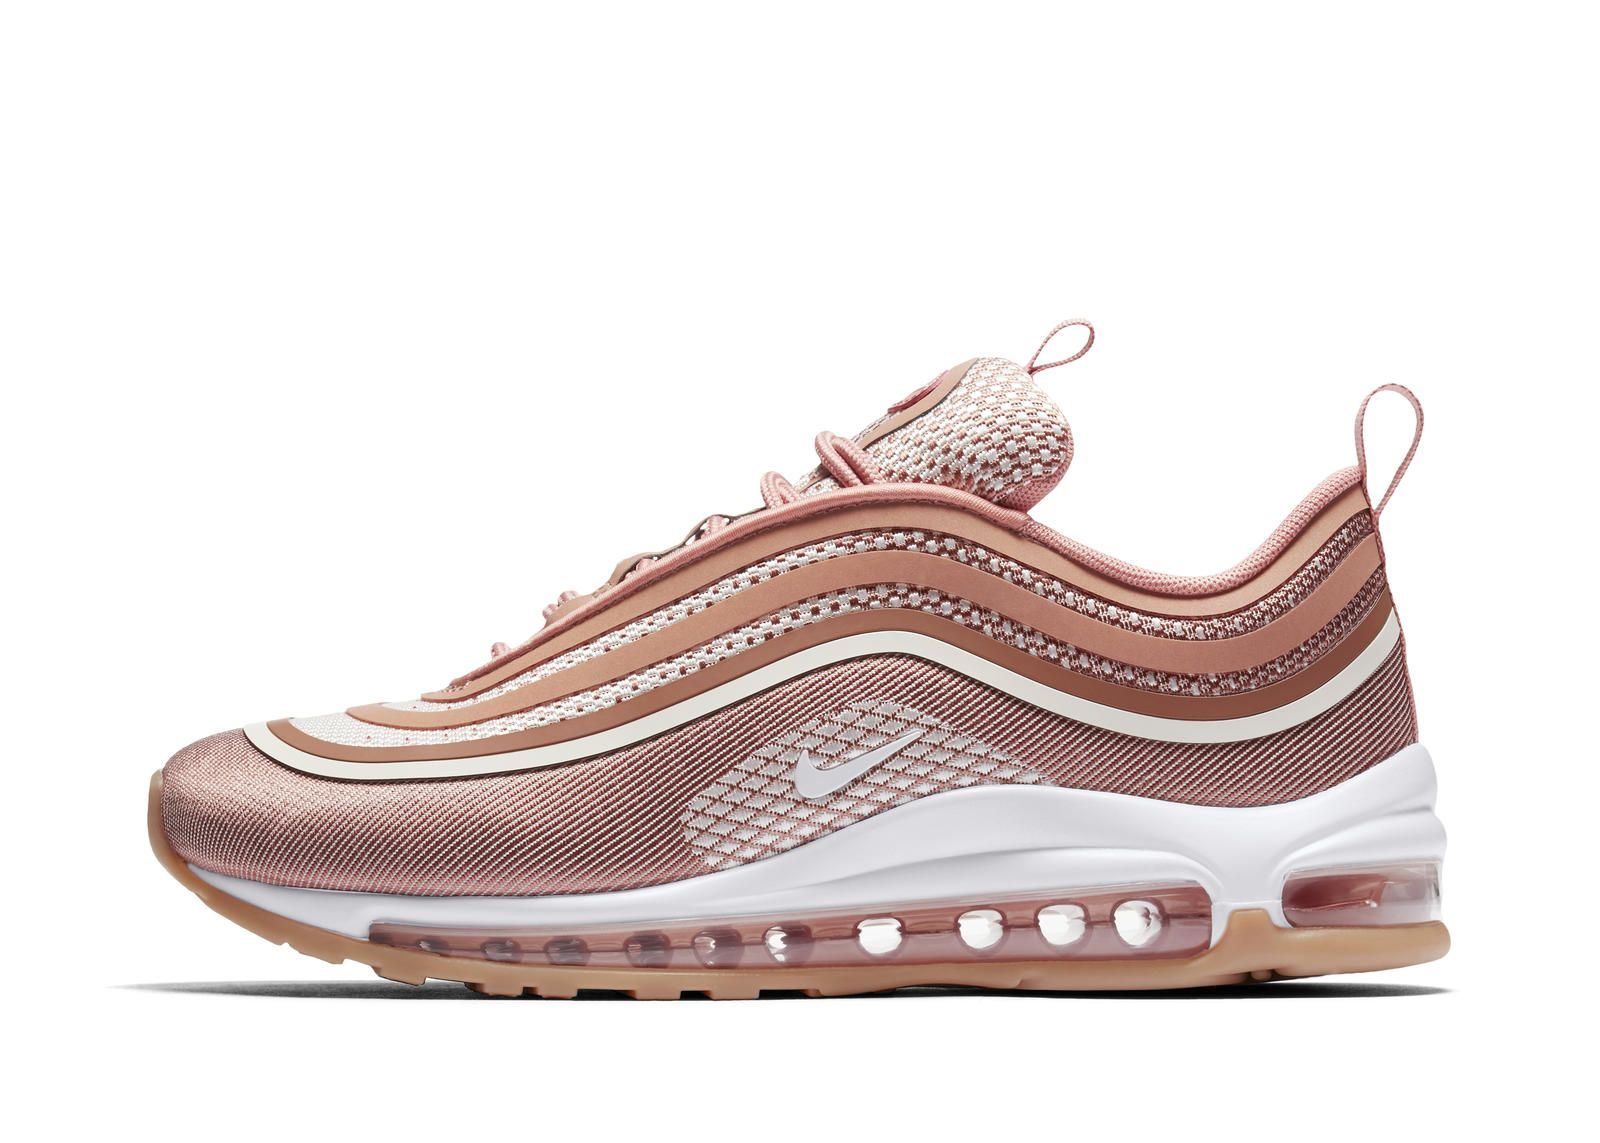 5511156ac56fe3 ... free shipping new fall colorways for the air max 97 nike news 505d8  dfe6a ...